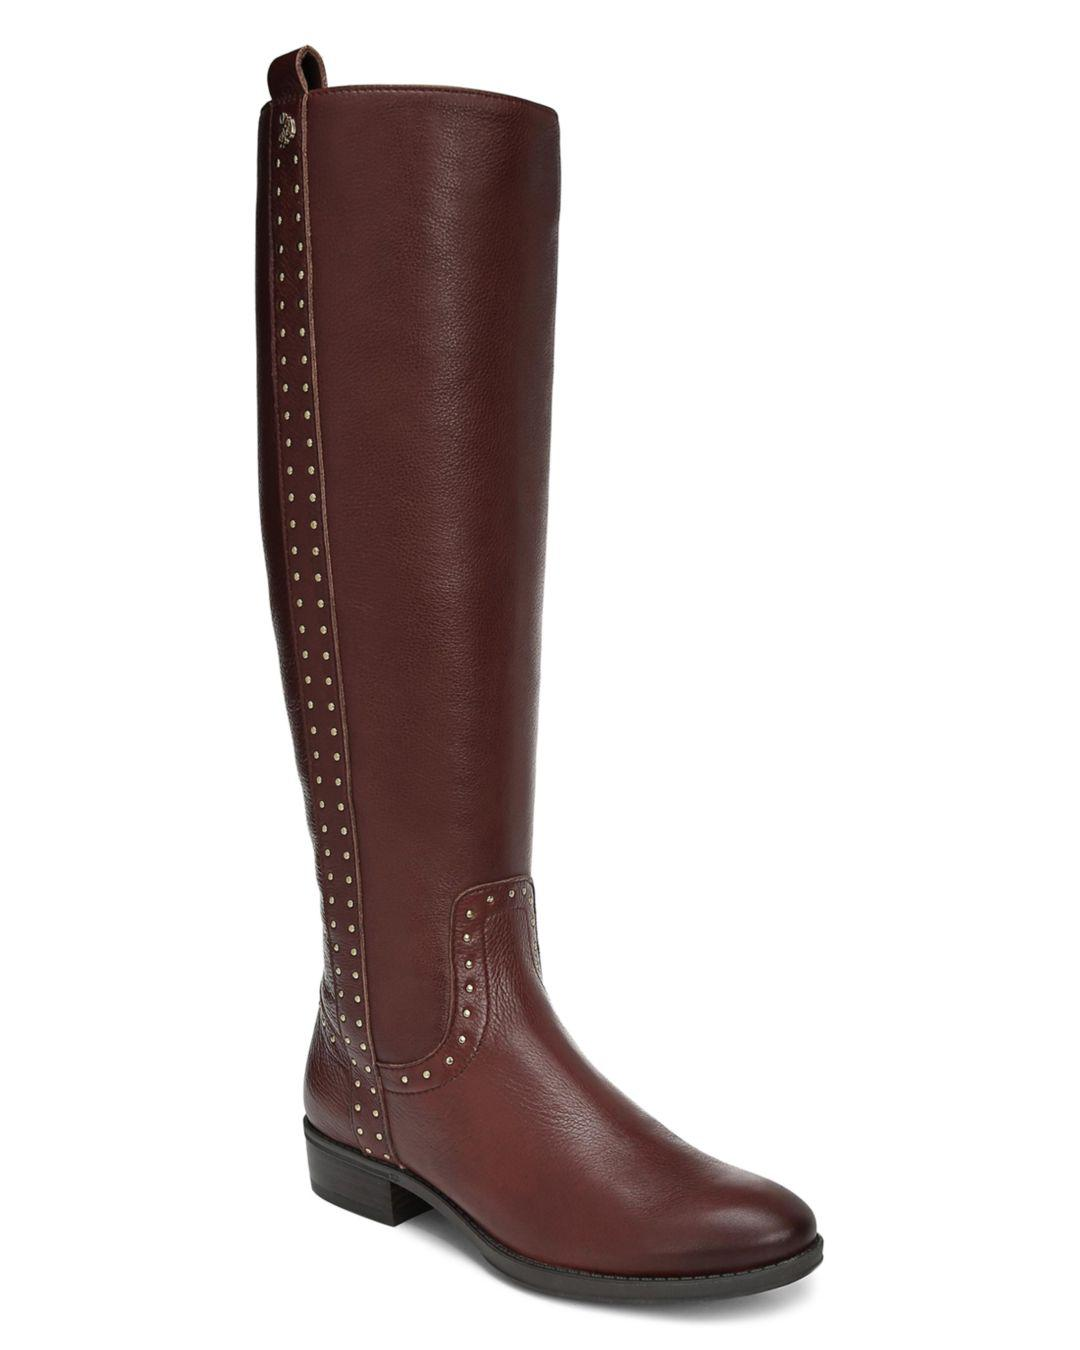 d0757fadf8d9 Lyst - Sam Edelman Women s Prina Round Toe Tall Leather Boots in ...